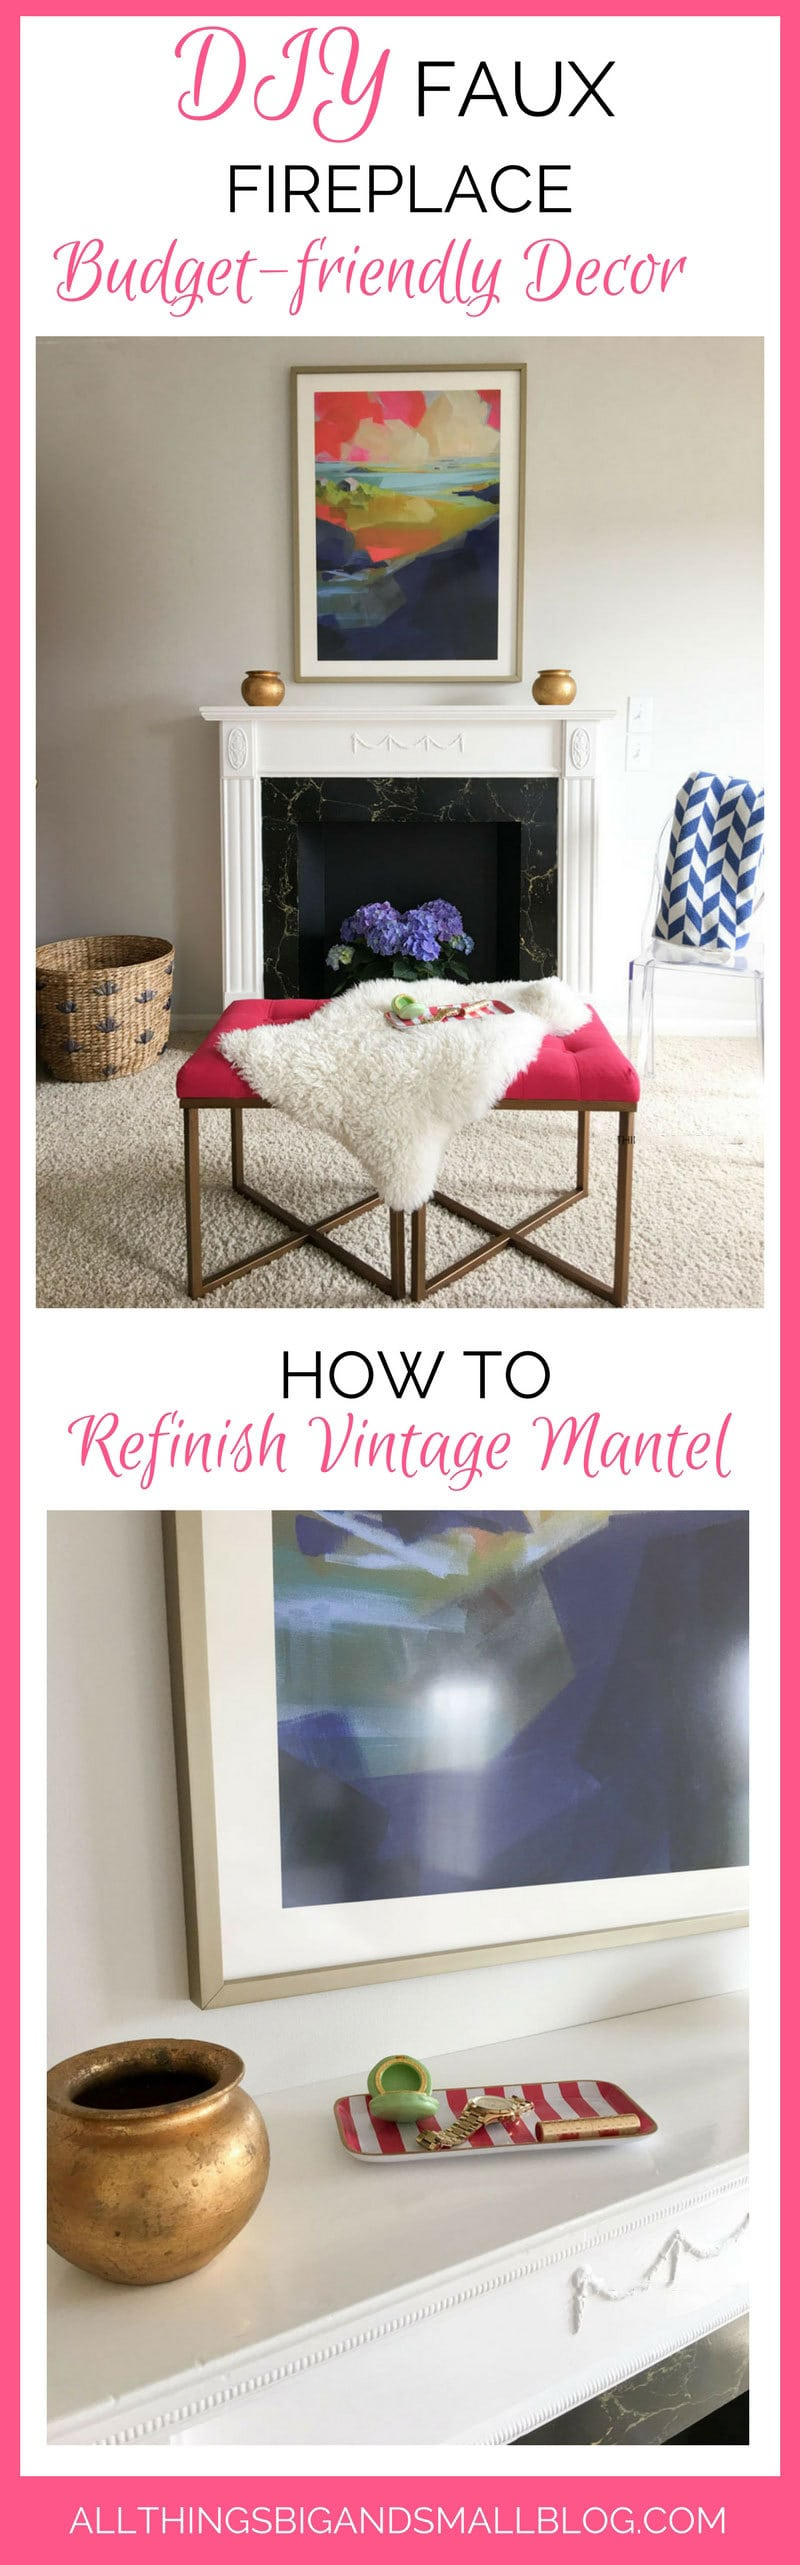 DIY Faux Fireplace | DIY Mantel | How to Refinish a Vintage Mantel | ALL THINGS BIG AND SMALL